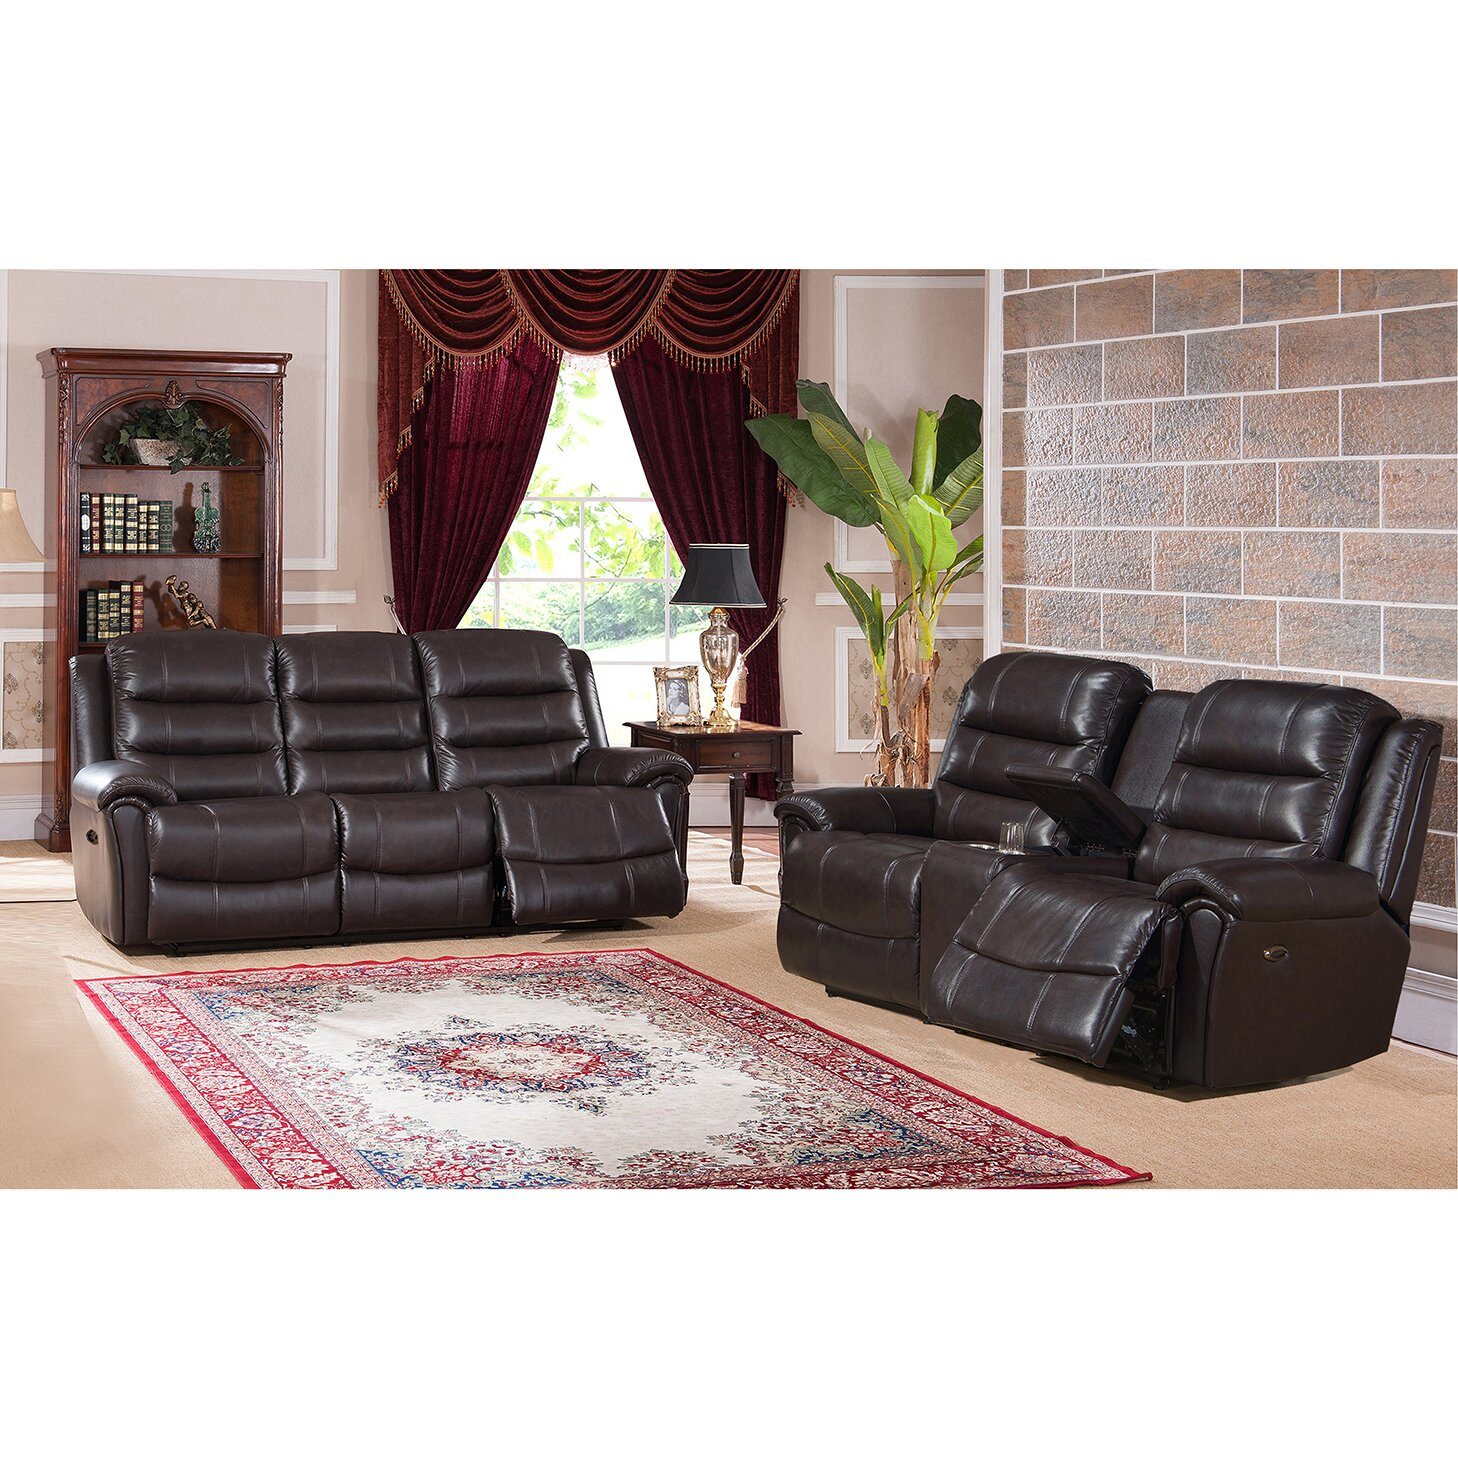 Amax Astoria Leather Recliner Sofa And Loveseat Set Wayfair